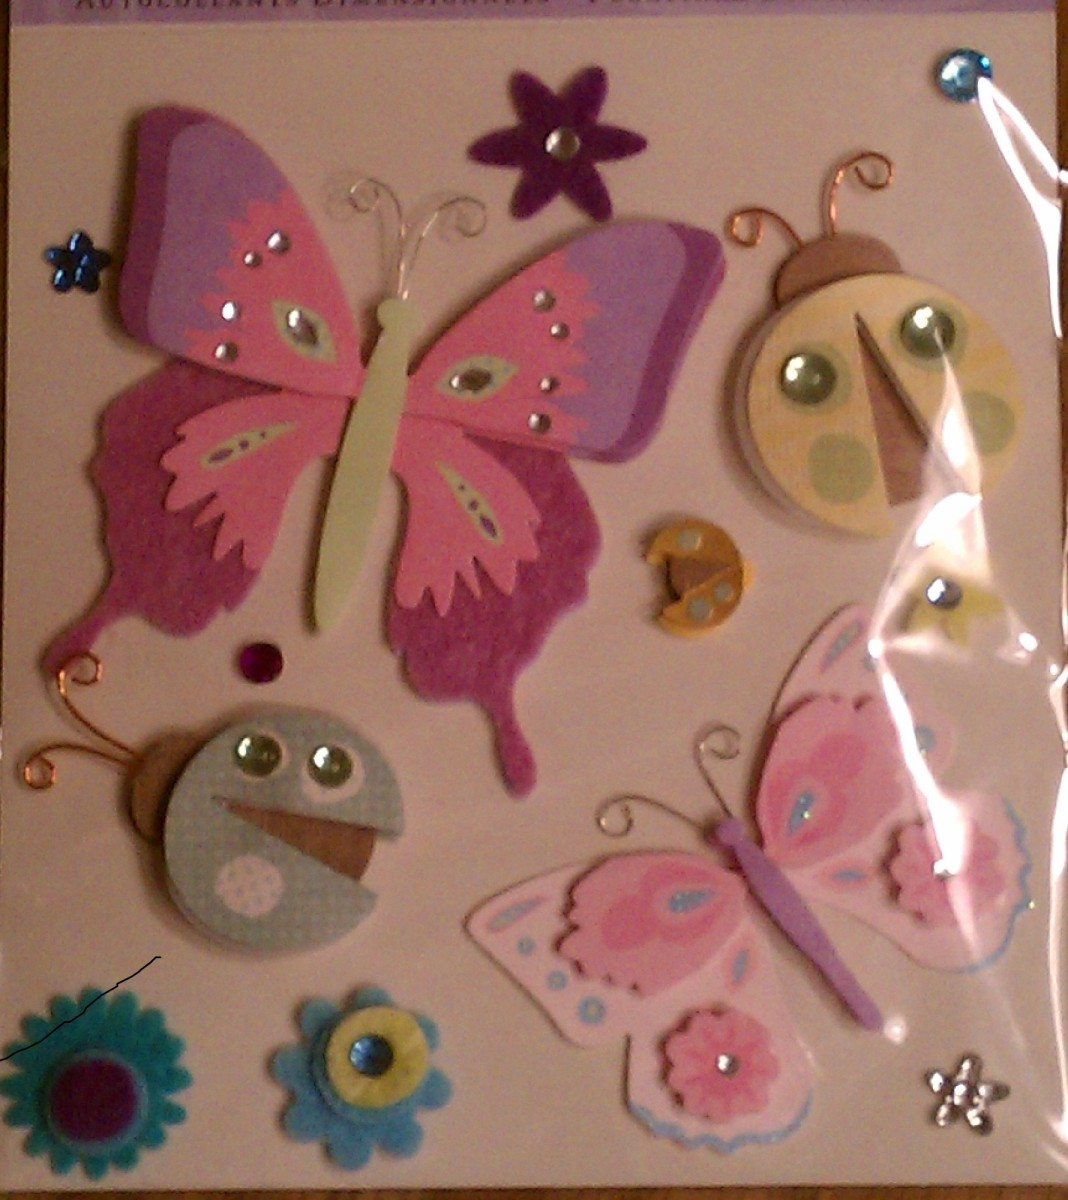 Scrapbooking stickers are a great way to customize the cake, and the mom can reuse them.